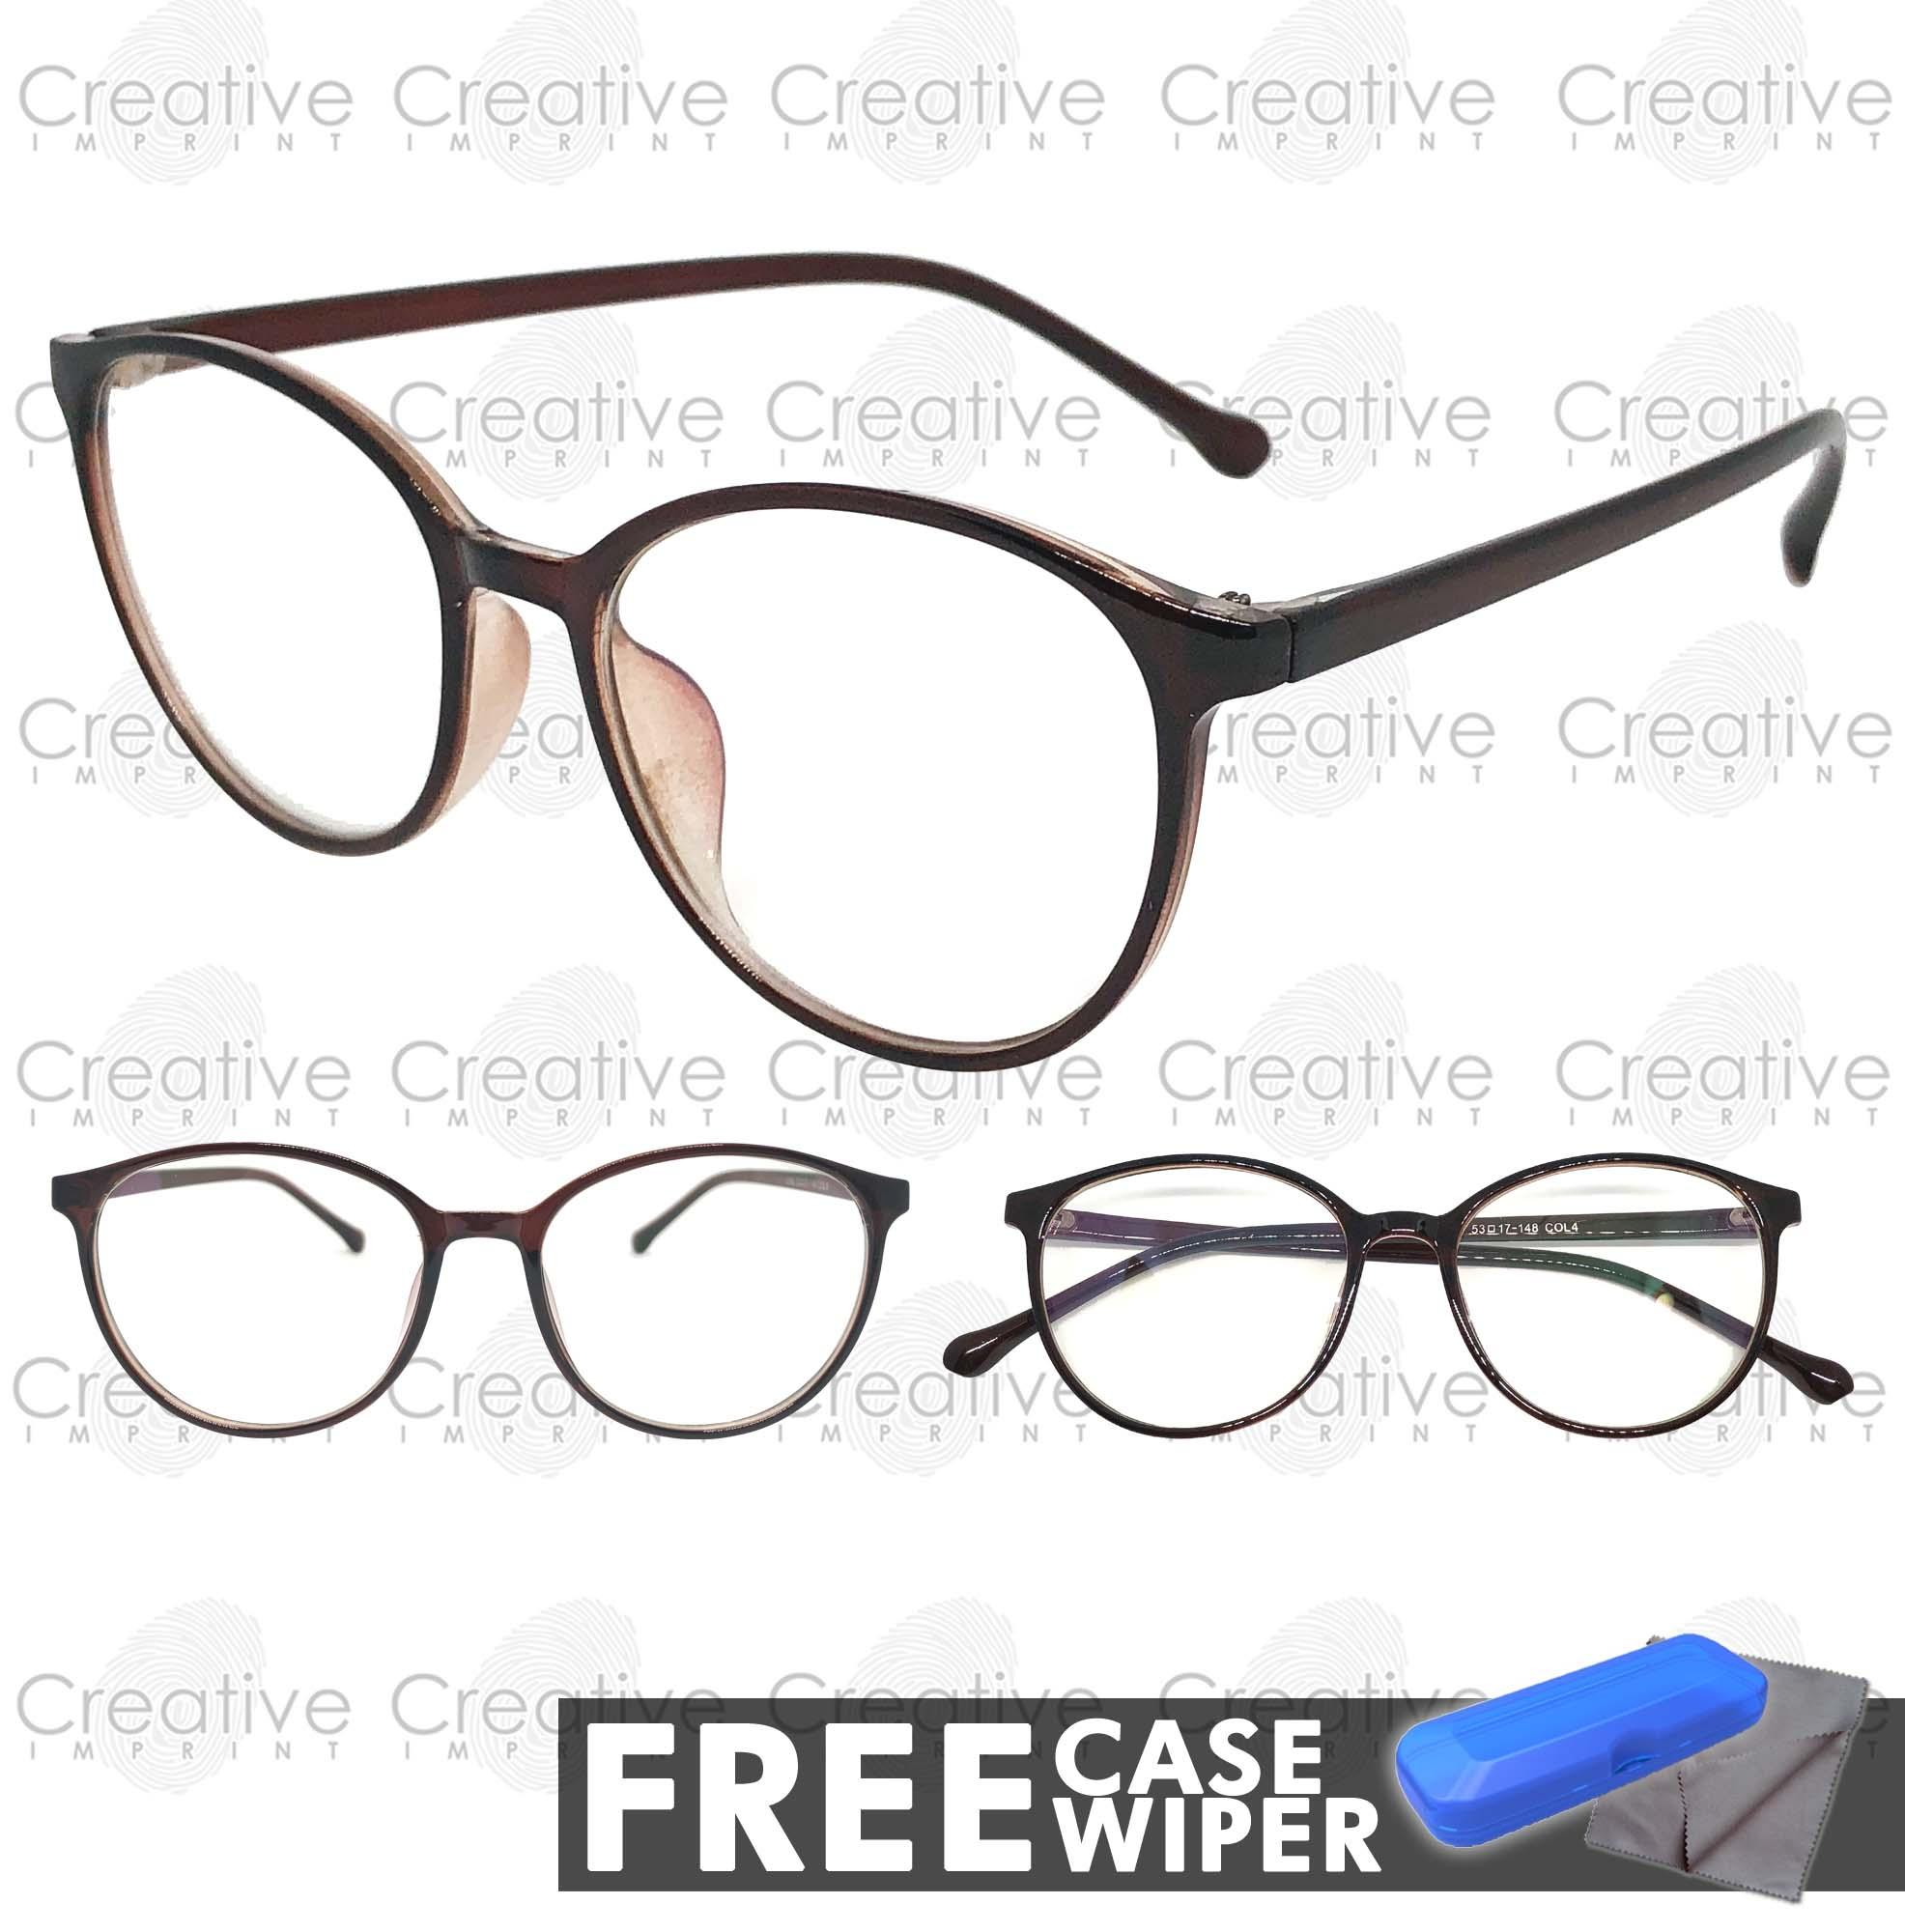 8c5bc1a4df Creative Imprint Eyeglasses Anti-Radiation Lens (#05 Brown) Anti-Fatigue  Anti